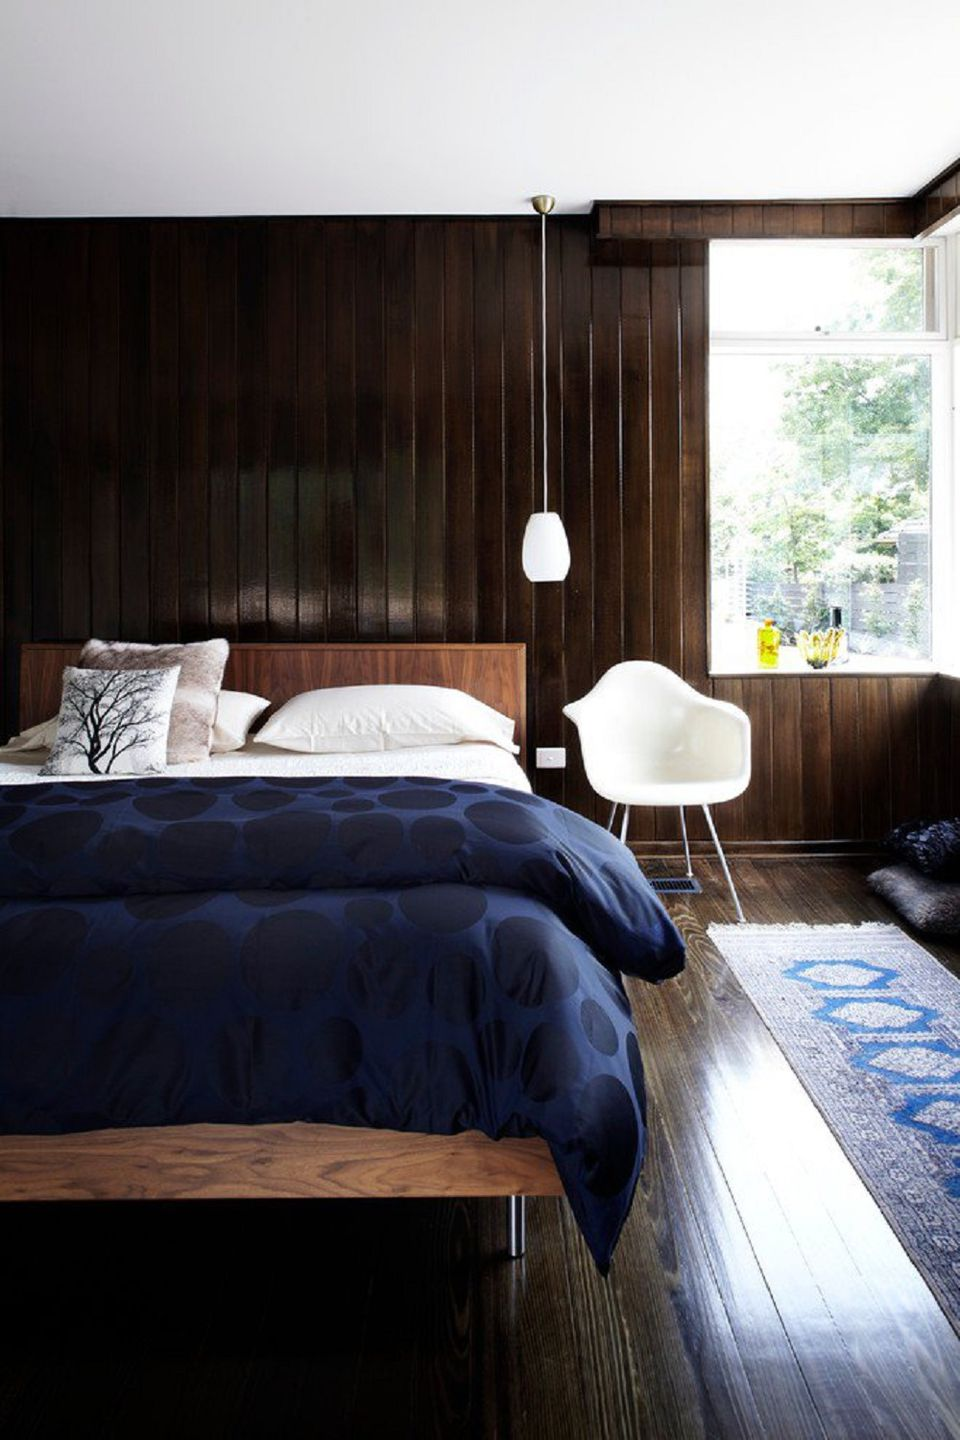 pinterest s how design help your keep resolution modsy modern you on bedroom mid century images good year new best can